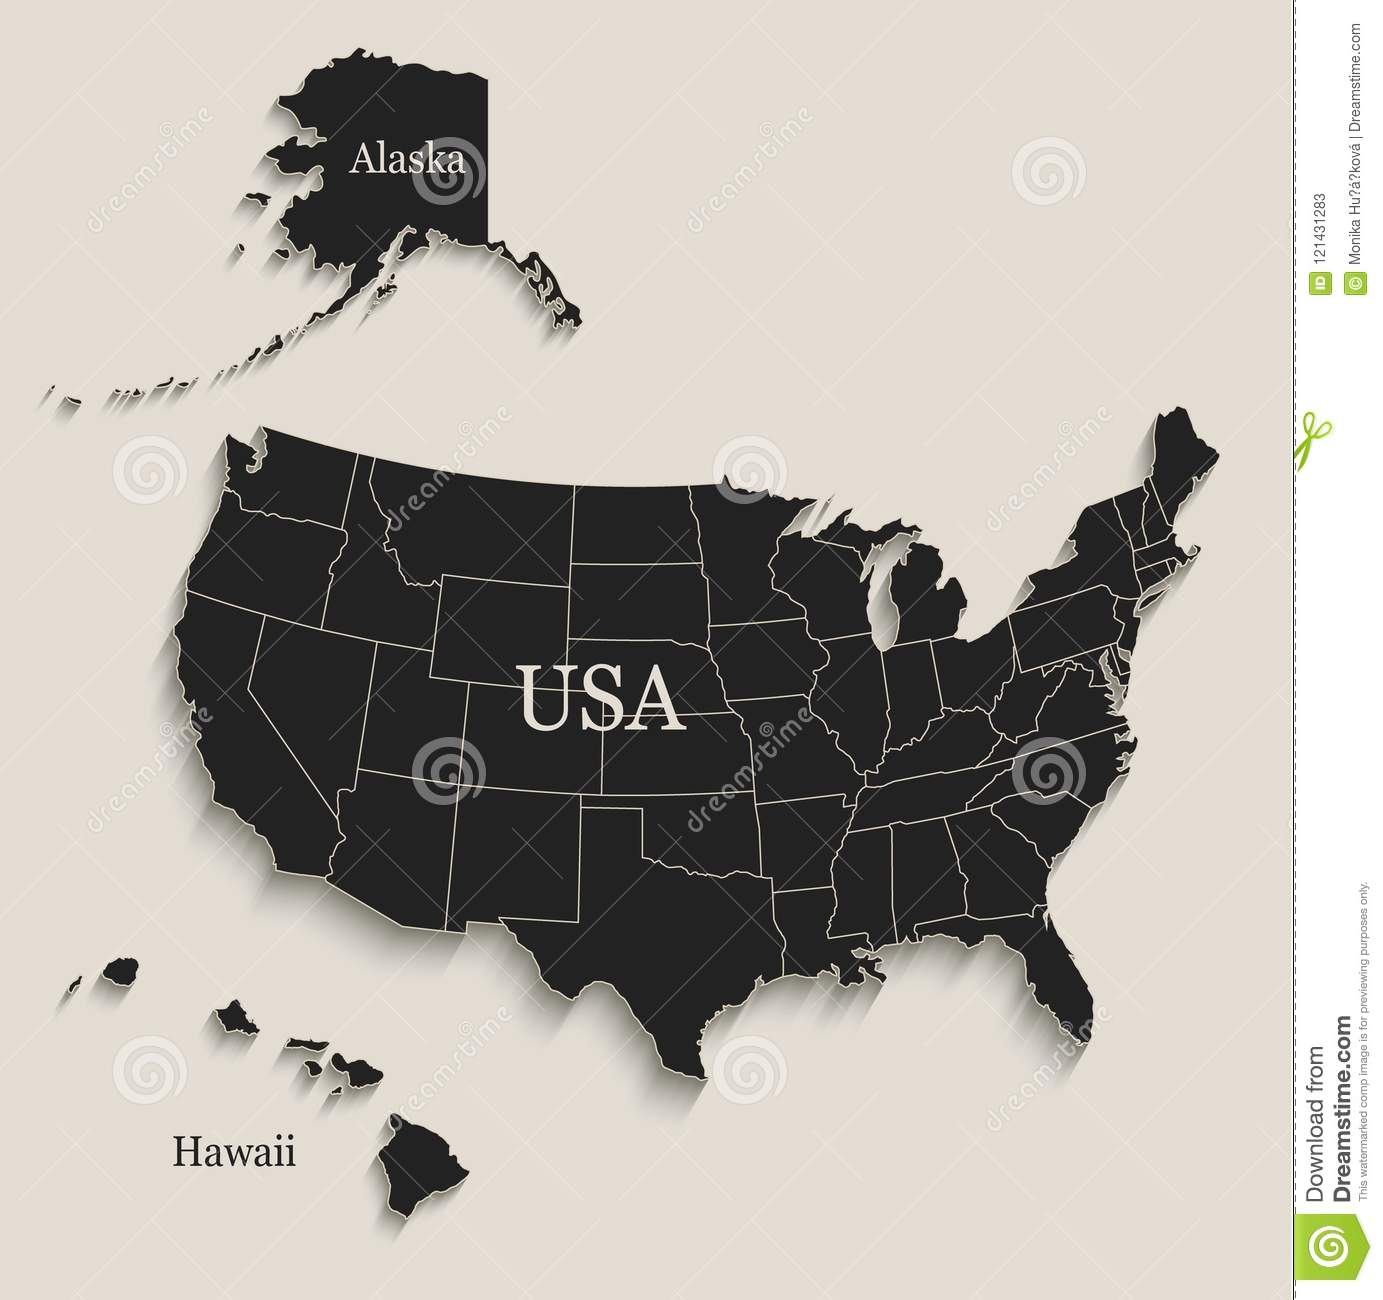 USA Map With Alaska And Hawaii Black Blackboard Separate States ...